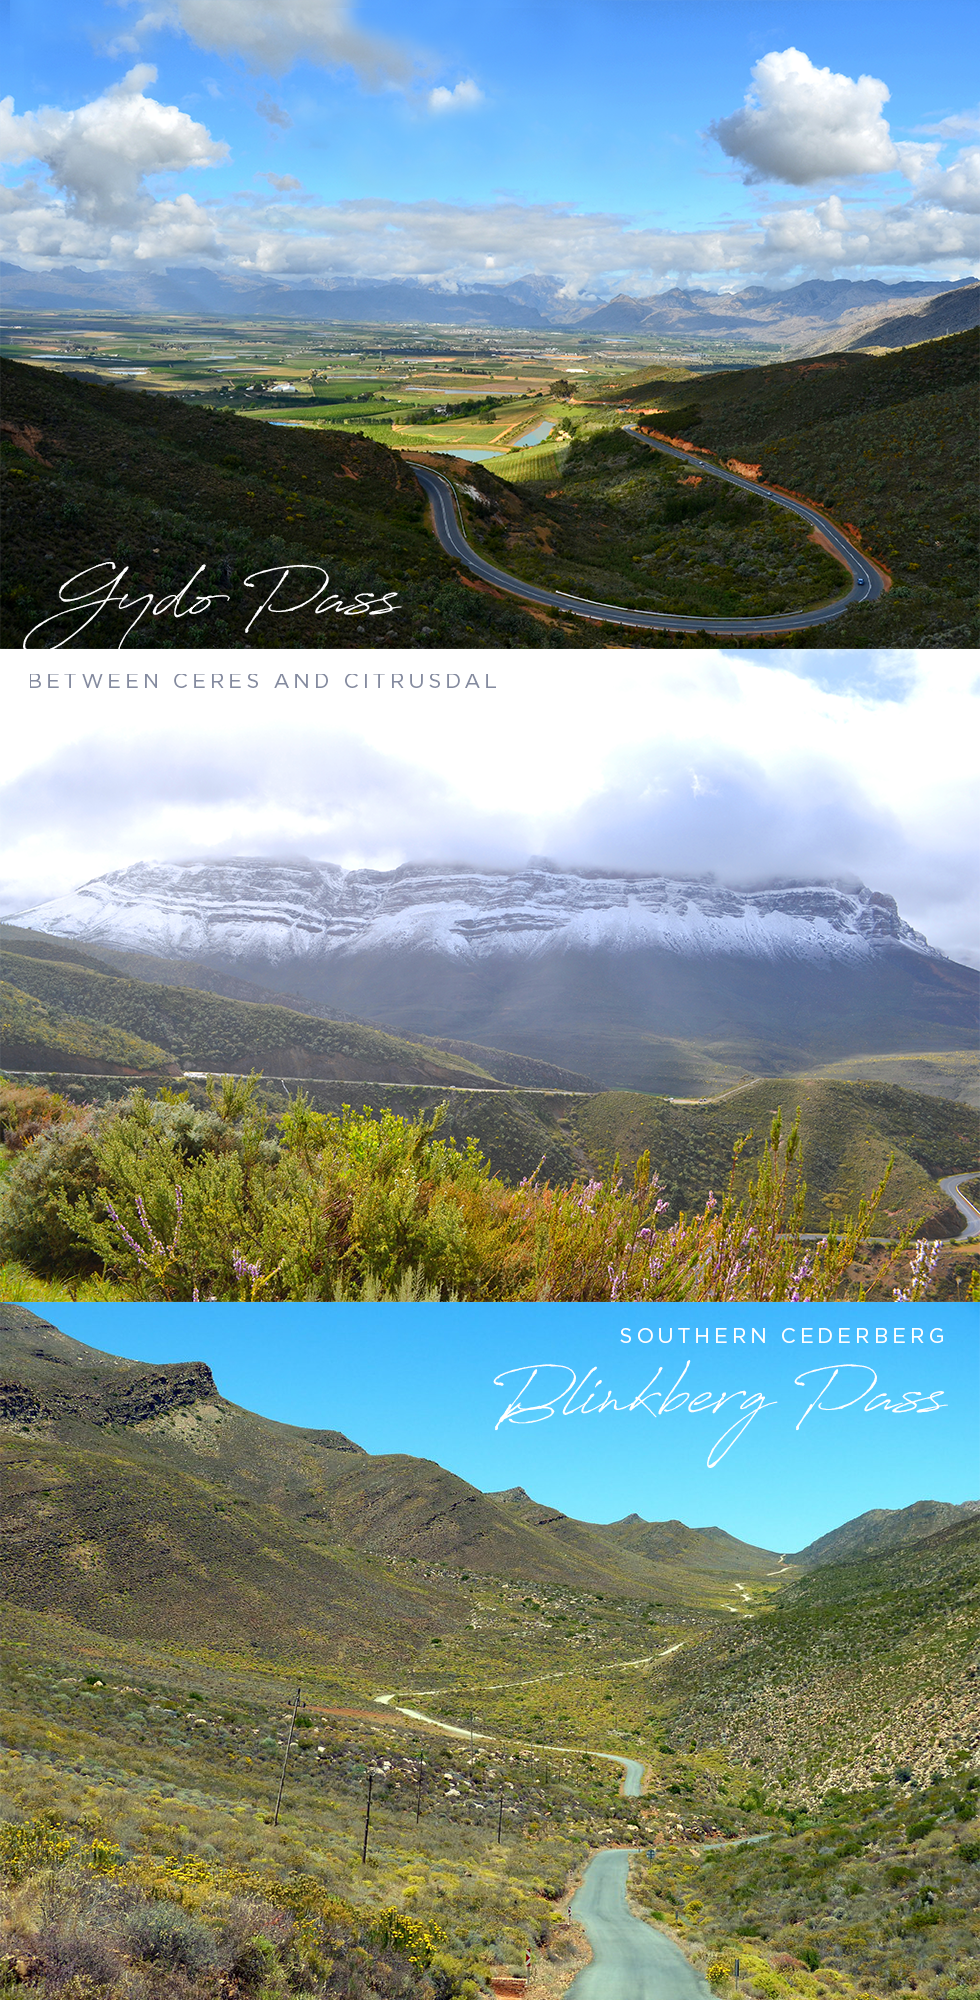 Gydo Pass (Ceres/Op Die Berg) and Blinkberg Pass (Cederberg) - mountain passes in South Africa